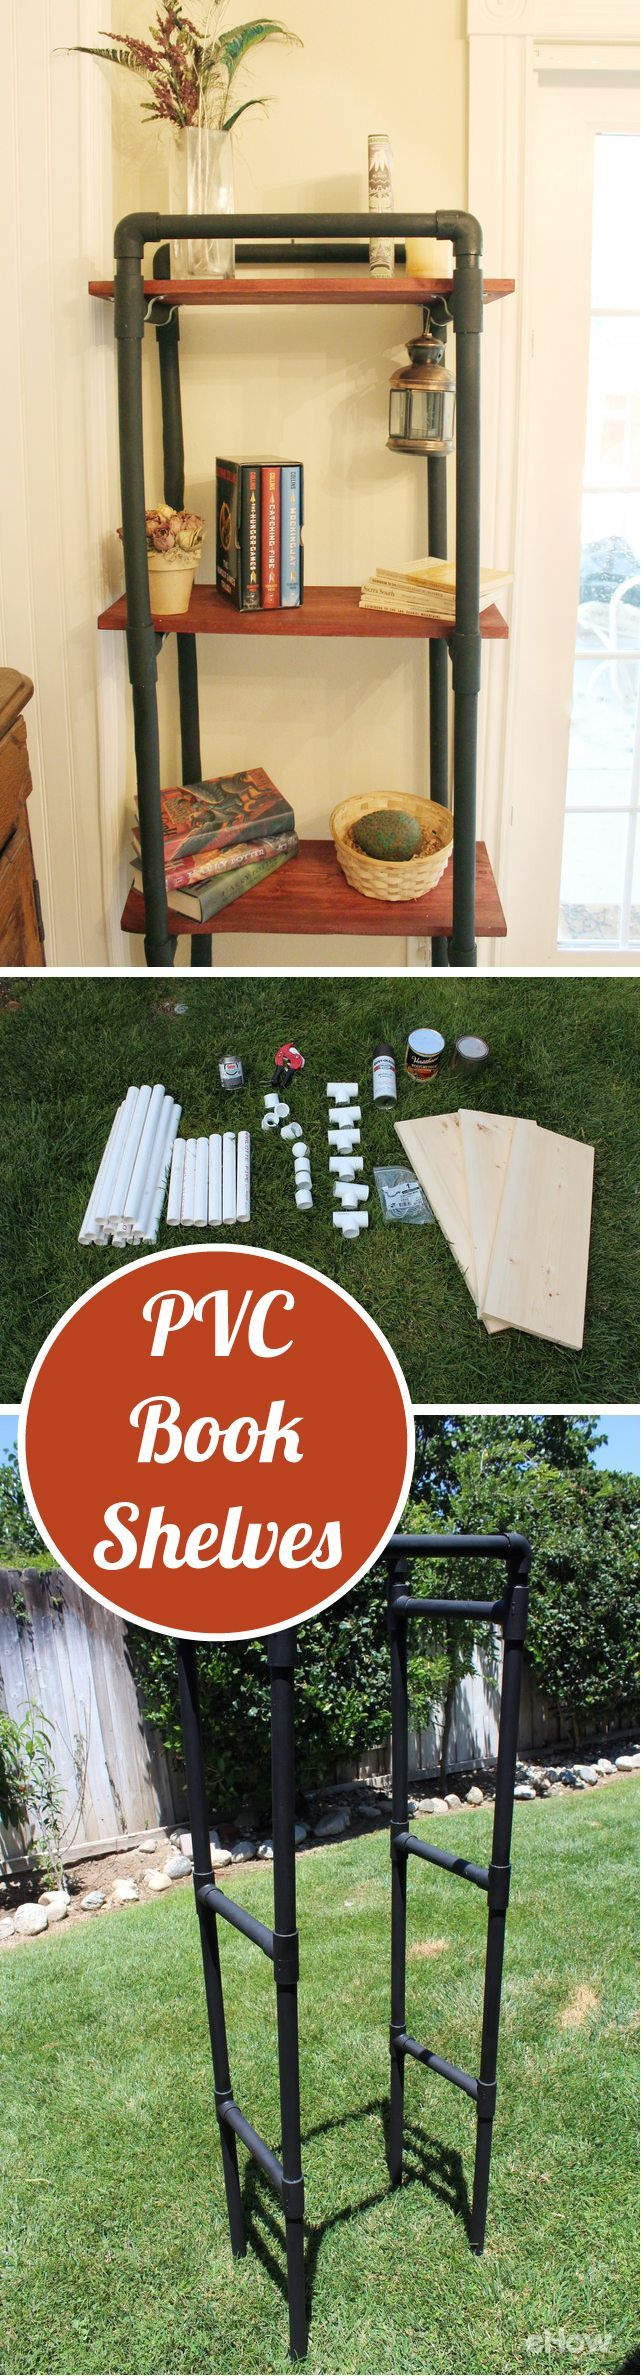 best repurposing pvc images by lisa huff on pinterest good